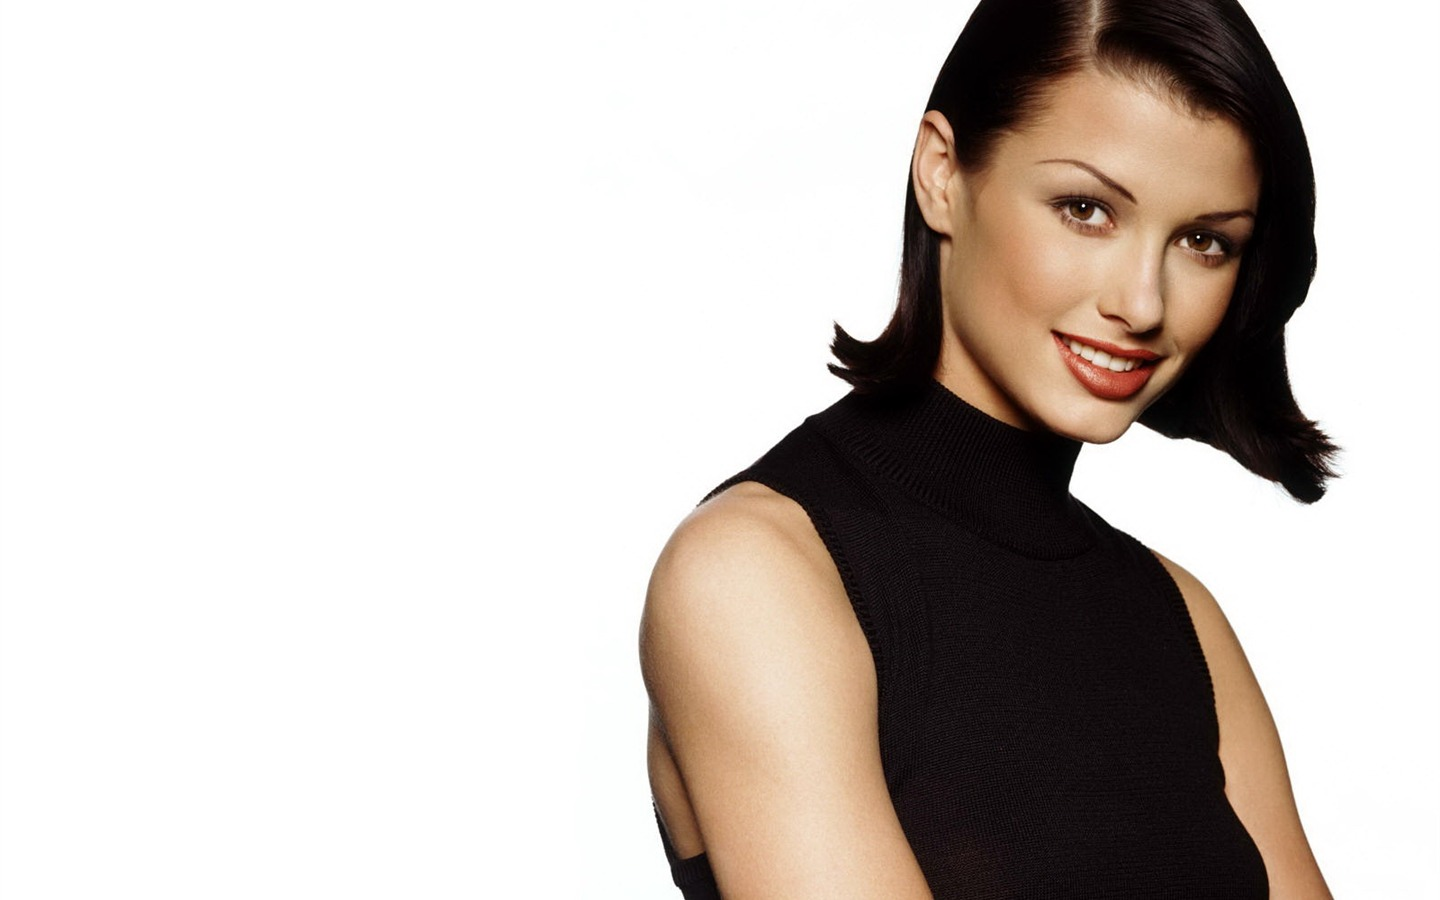 Bridget Moynahan #011 - 1440x900 Wallpapers Pictures Photos Images